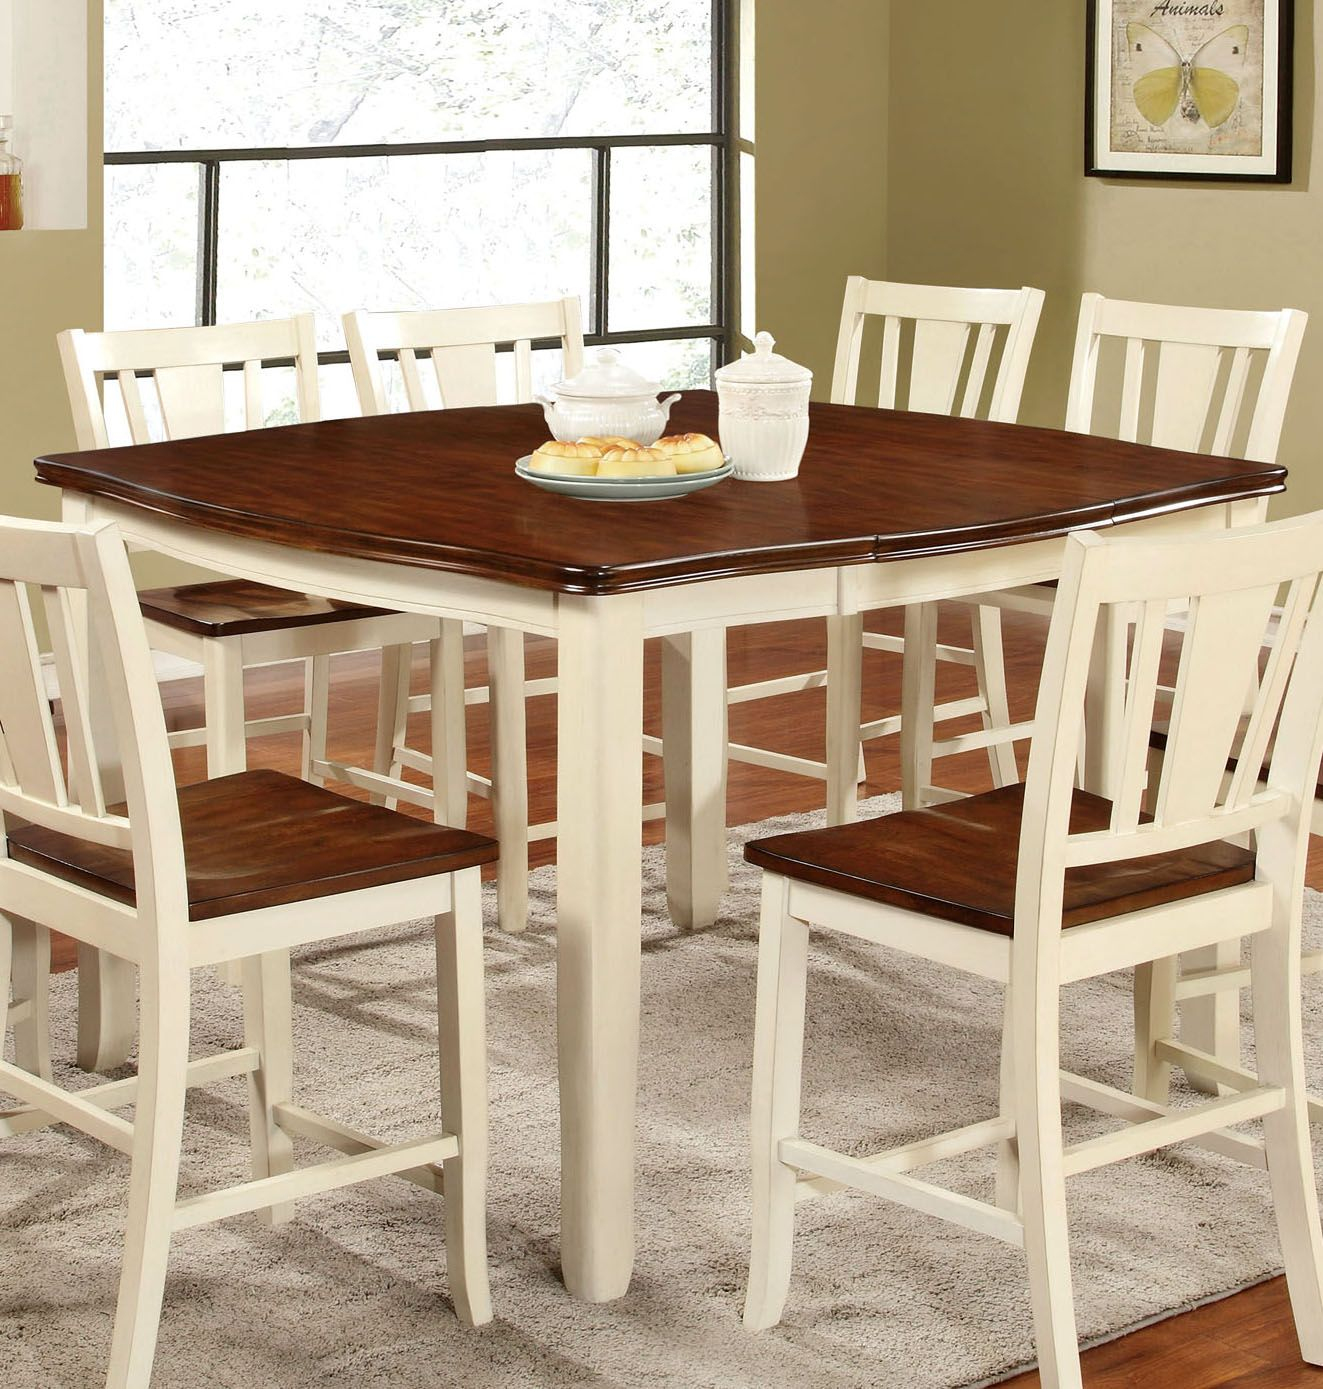 Transitional Counter Height Table, Vintage White, Cherry Brown